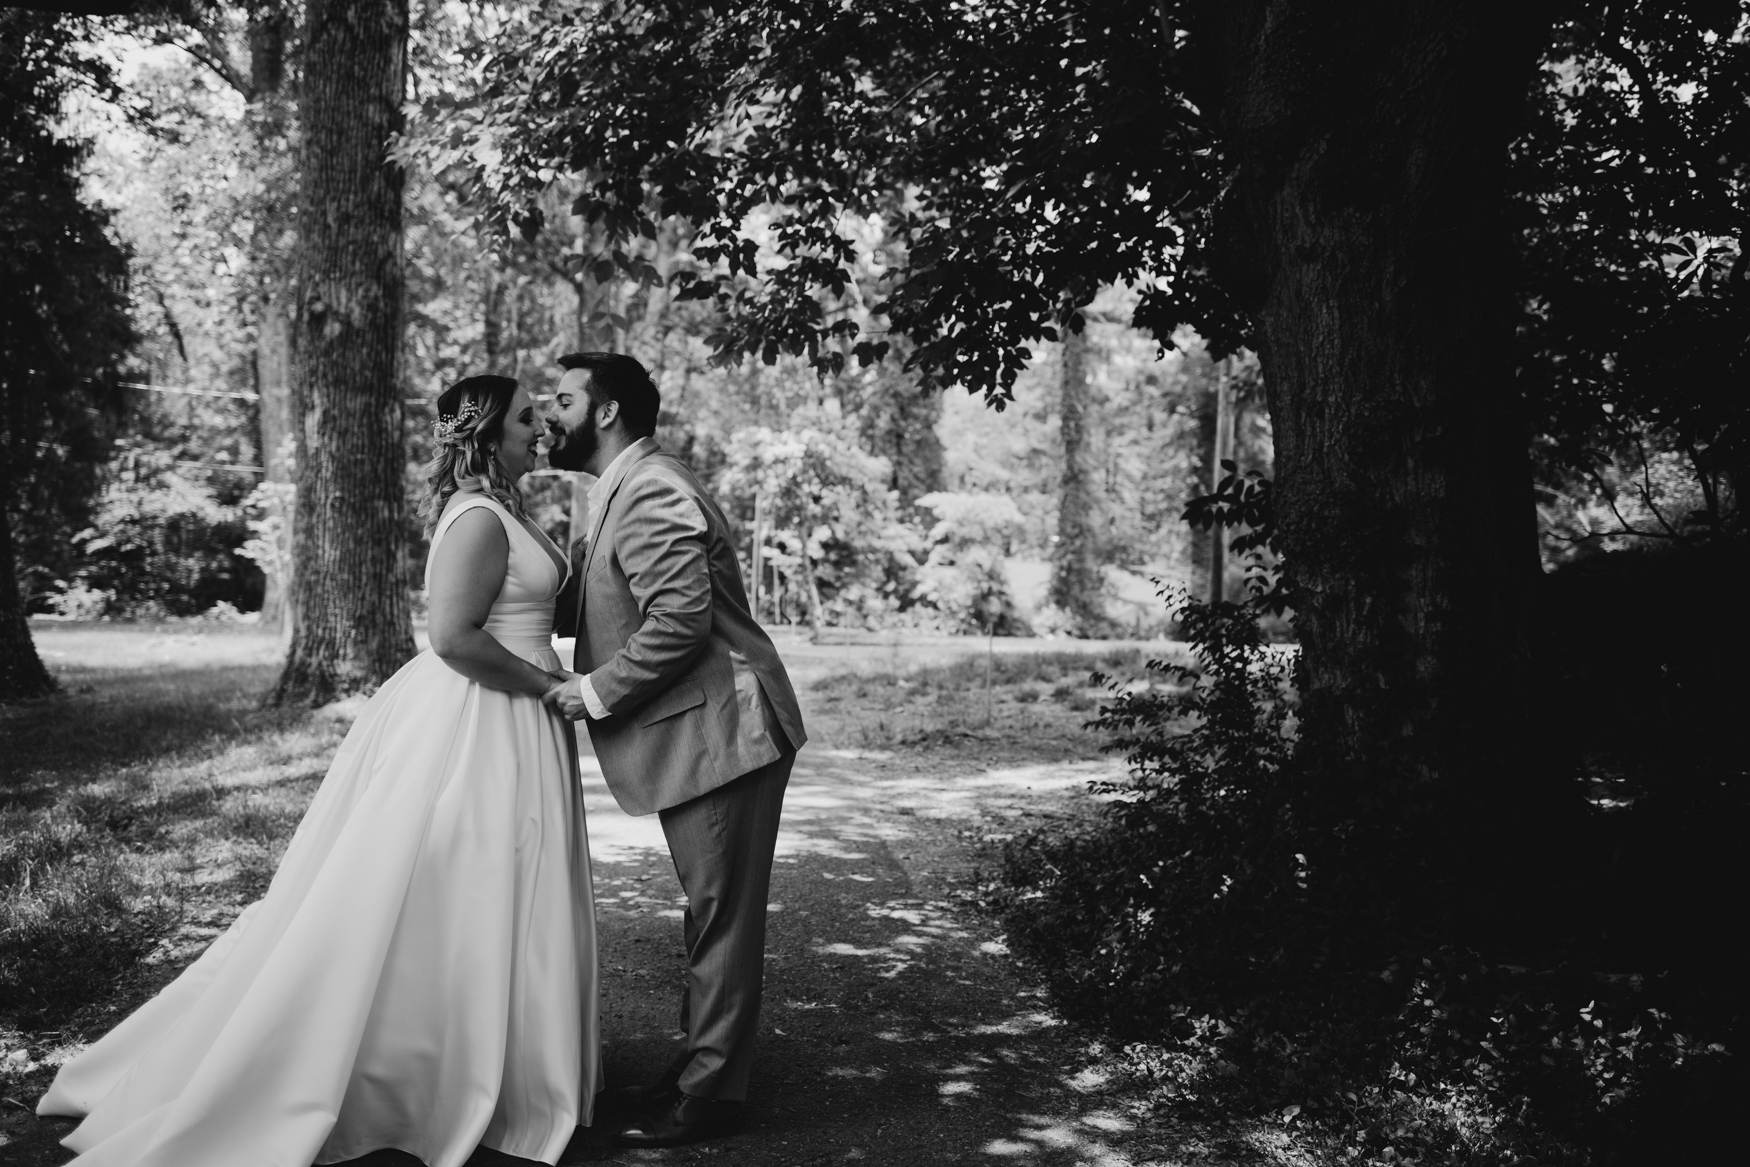 charlotte wedding photographer, asheville wedding, highland brewing wedding, destination wedding photographer, italian countryside wedding, milan wedding photographer,  north carolina wedding photographer,